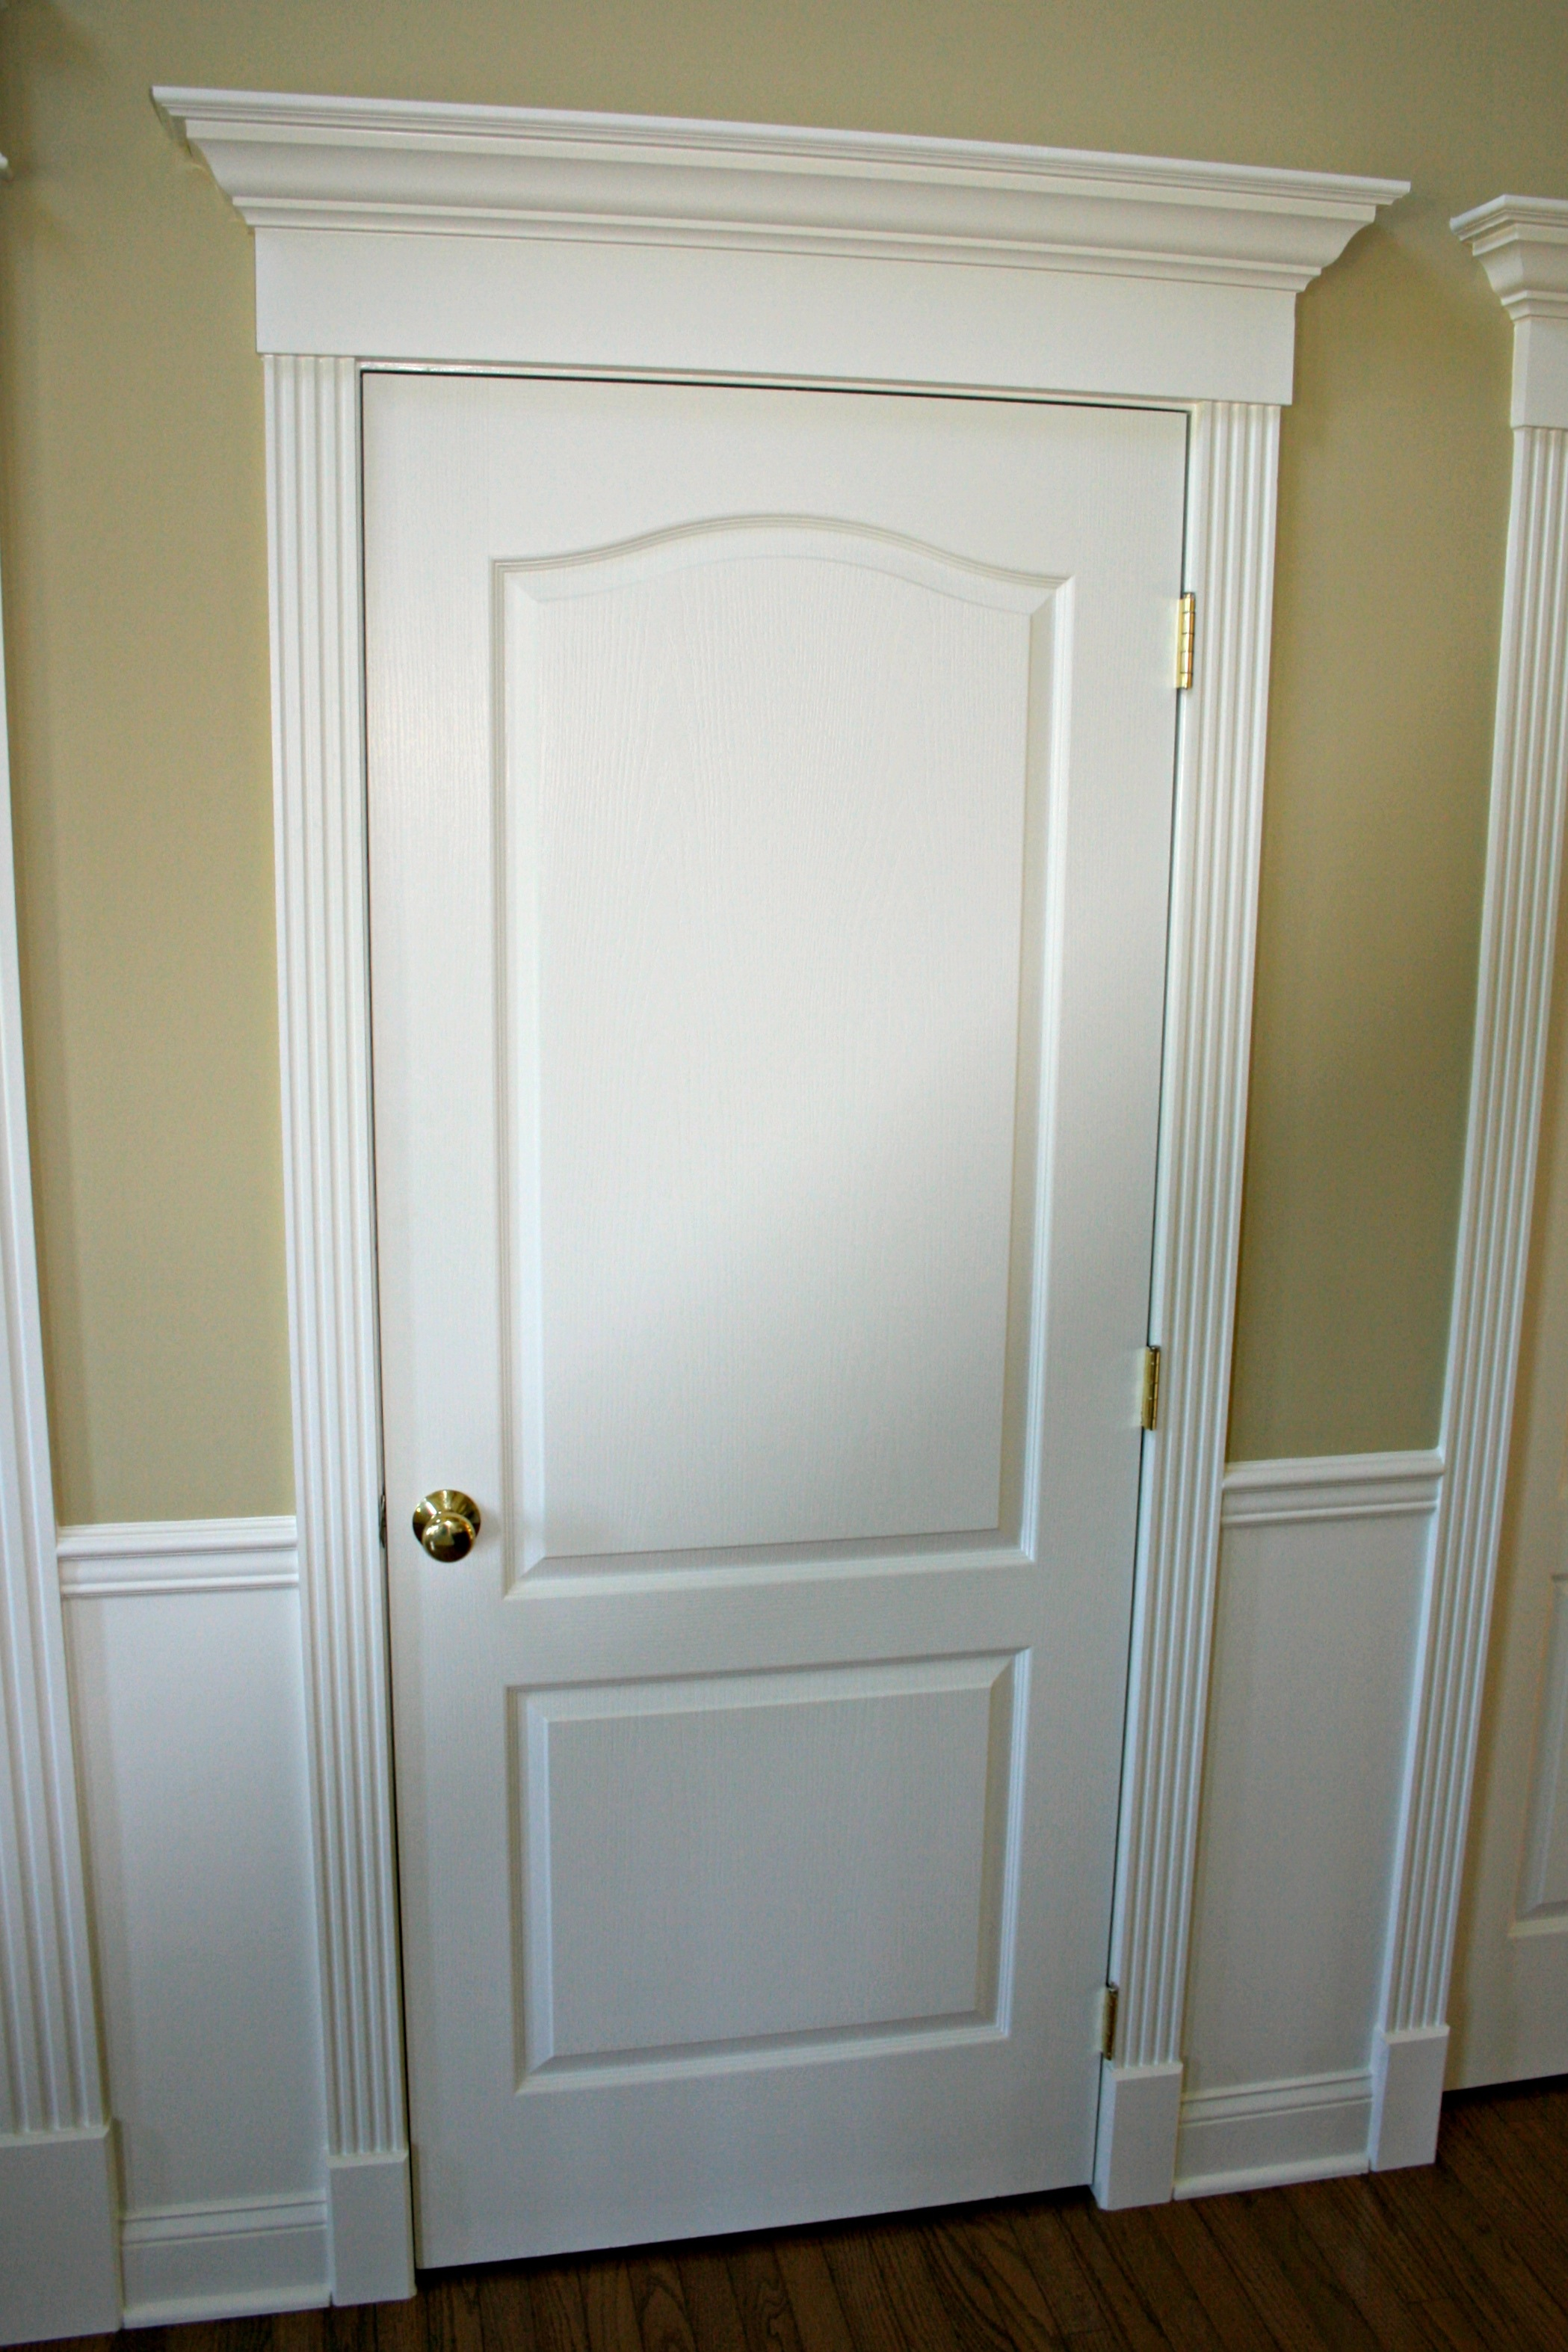 Door casing and window trim installation by deacon home enhancement - Interior Door Installation Deacon Home Enhancement